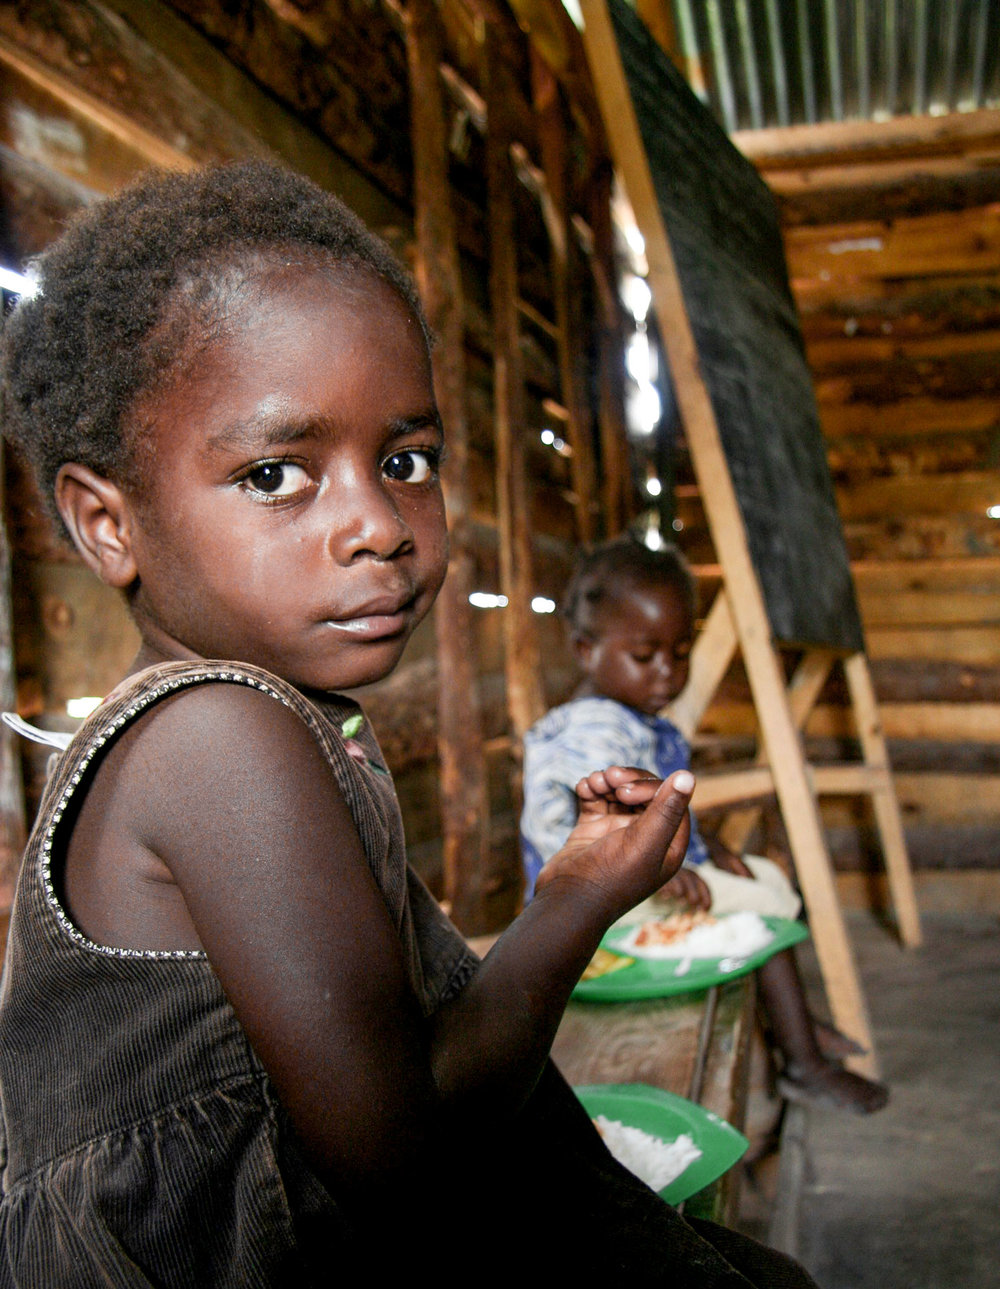 175 of the most vulnerable children in Mulenga receive a daily meal, access to education and access to basic health care.